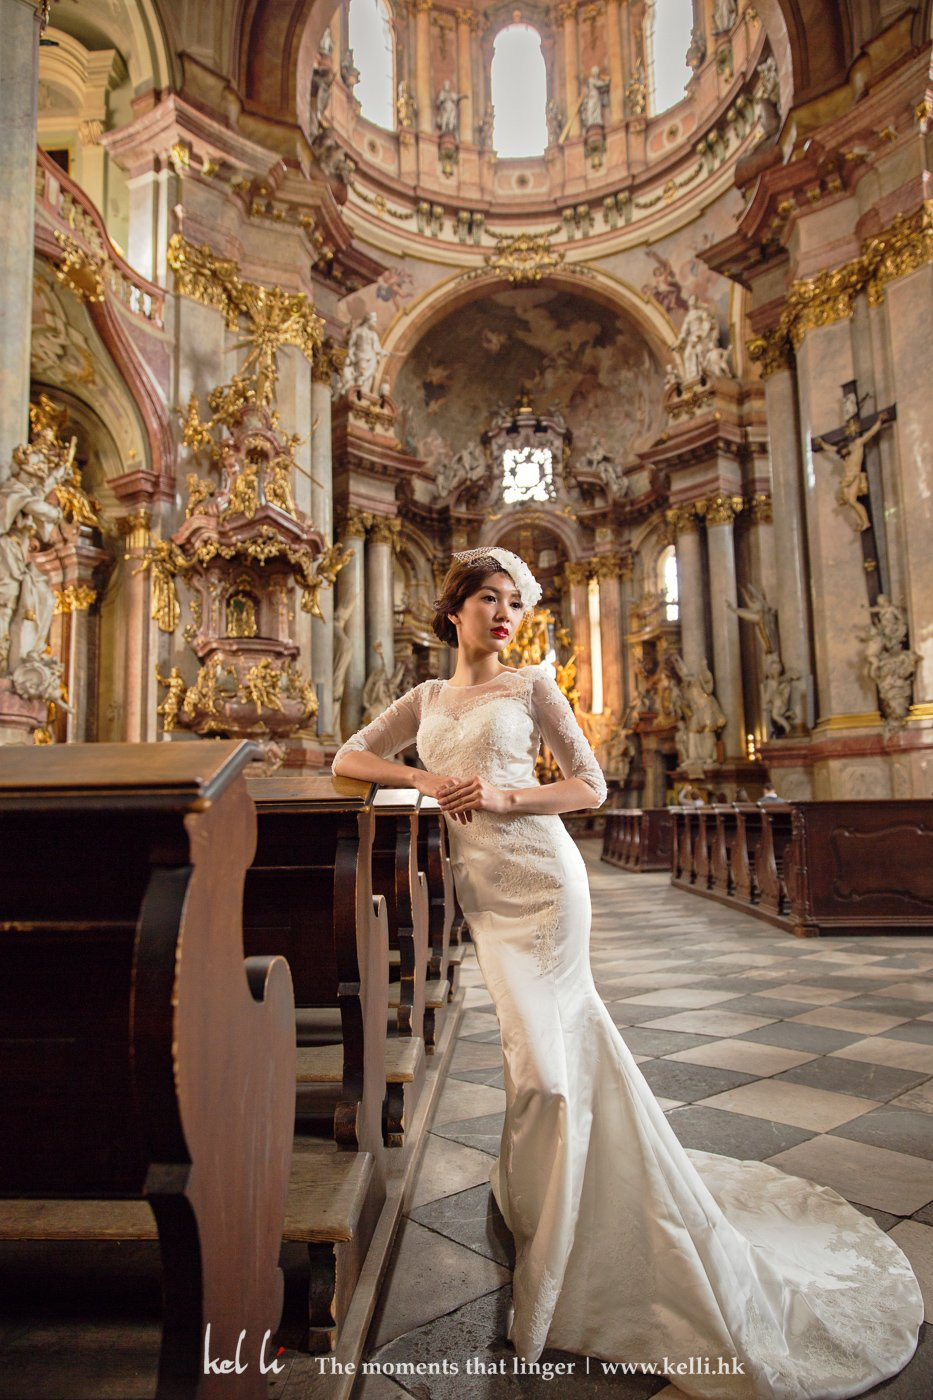 A bride in the beautiful church